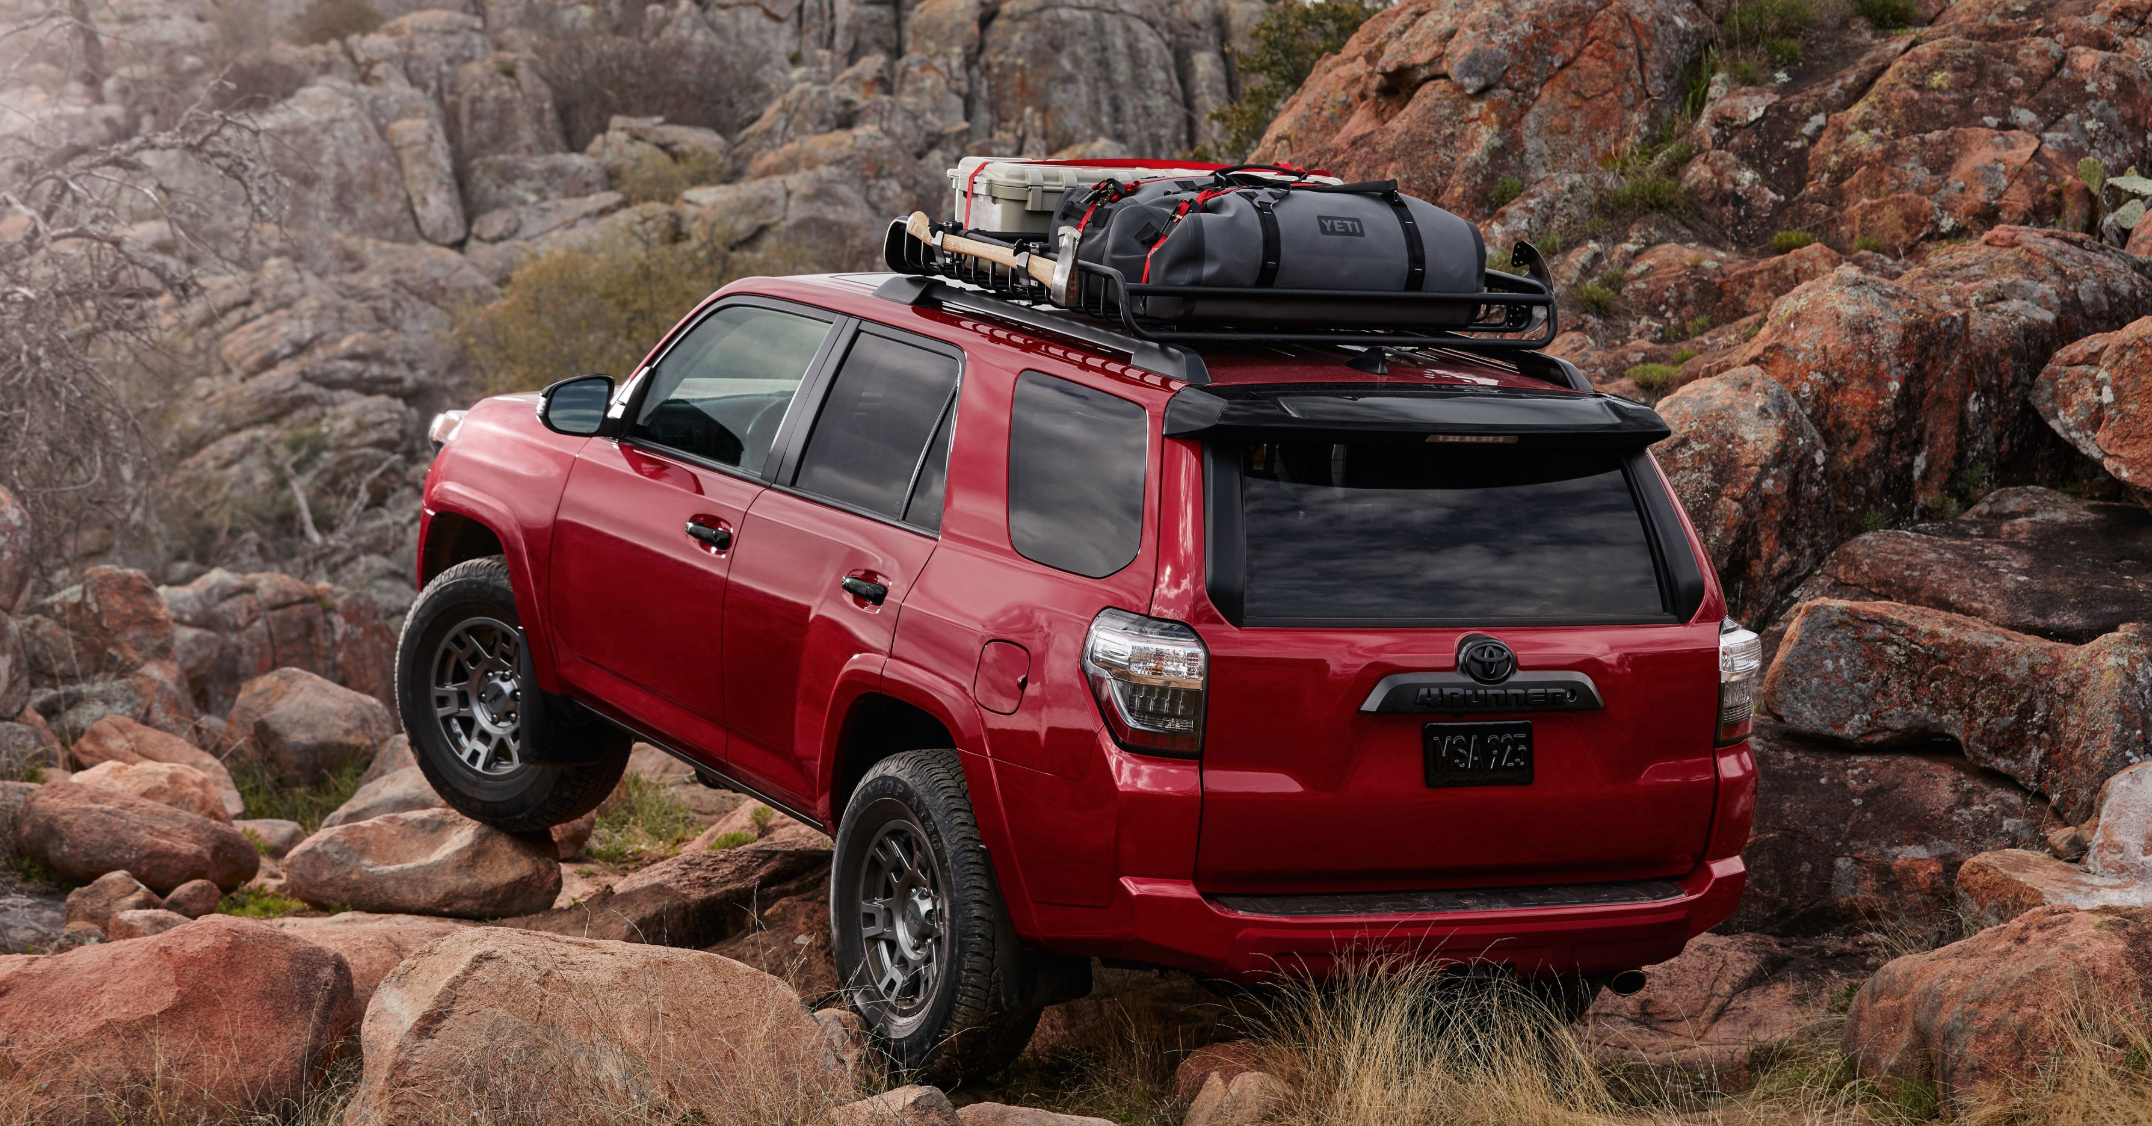 2020 Toyota 4runner Venture Edition Team4runner